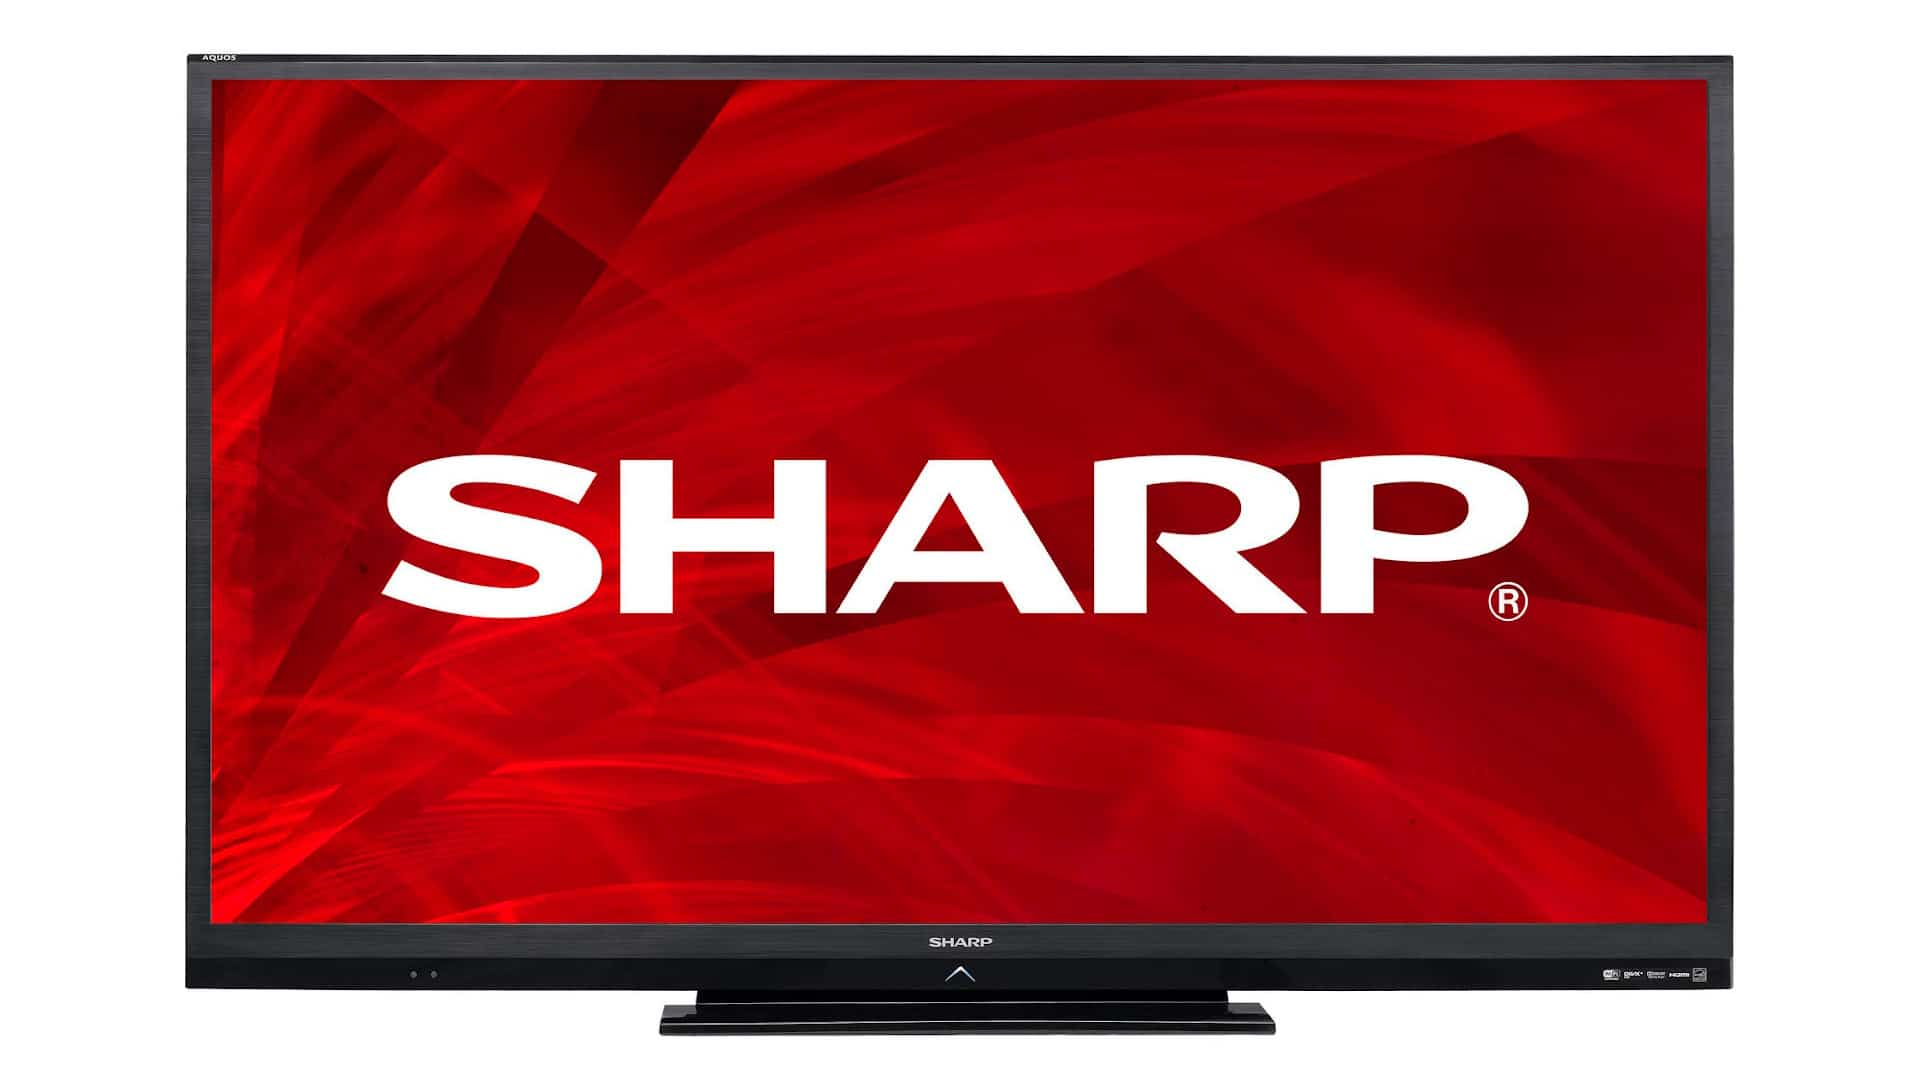 Sharp To Build $7 Billion Plant in USA Creating 700,000 Jobs, Is there an American made TV, is there a made in usa tv, which tv is made in america, which tv is made in usa, american made television, made in usa television, sharp tv, sharp television